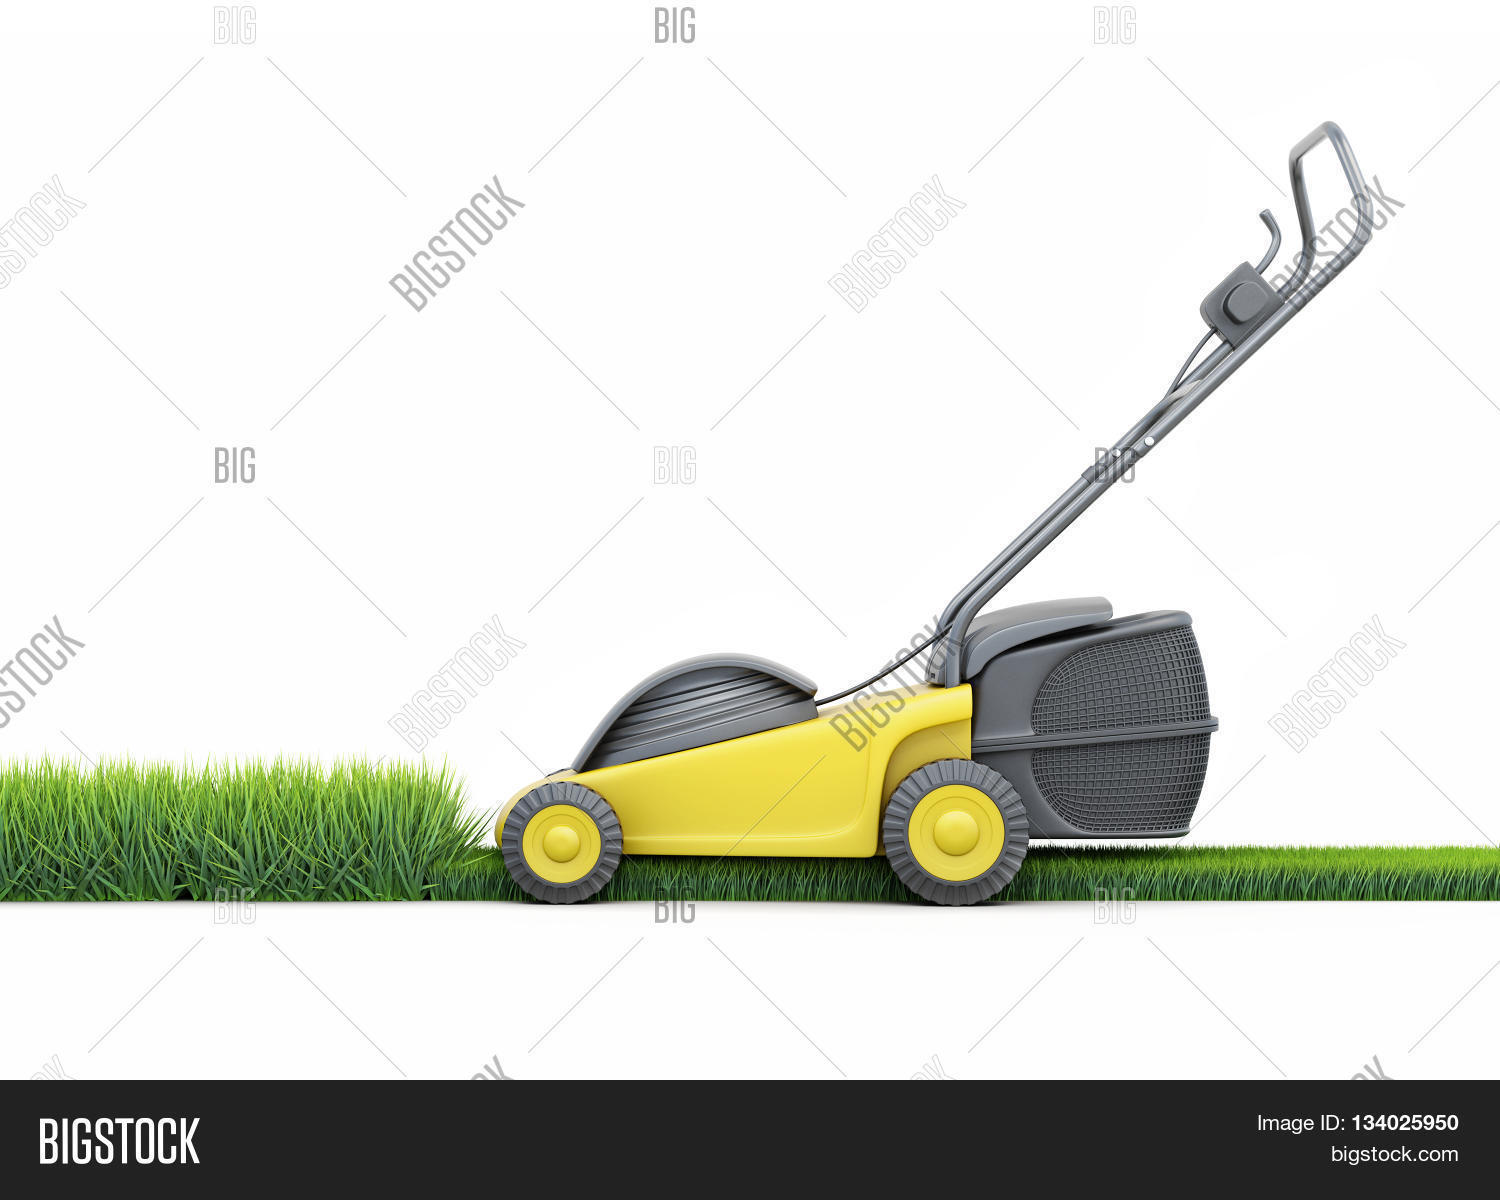 Lawn mower side view